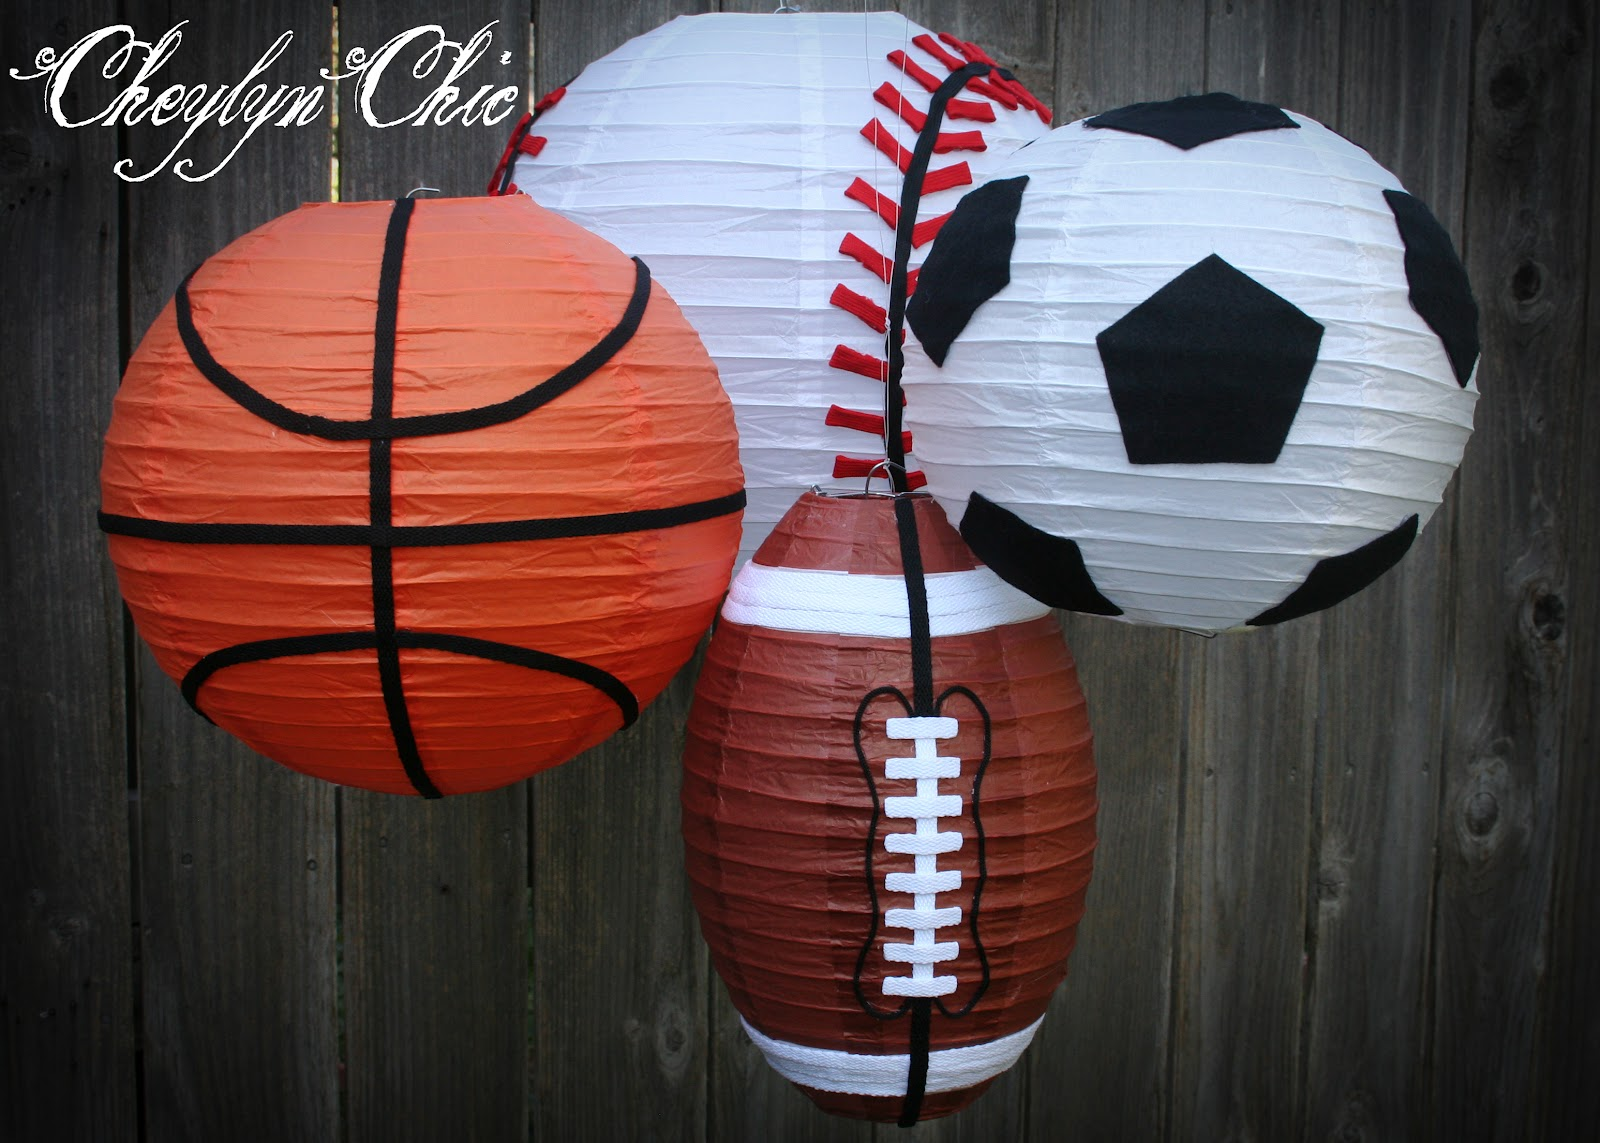 cheylyn chic let 39 s play ball. Black Bedroom Furniture Sets. Home Design Ideas